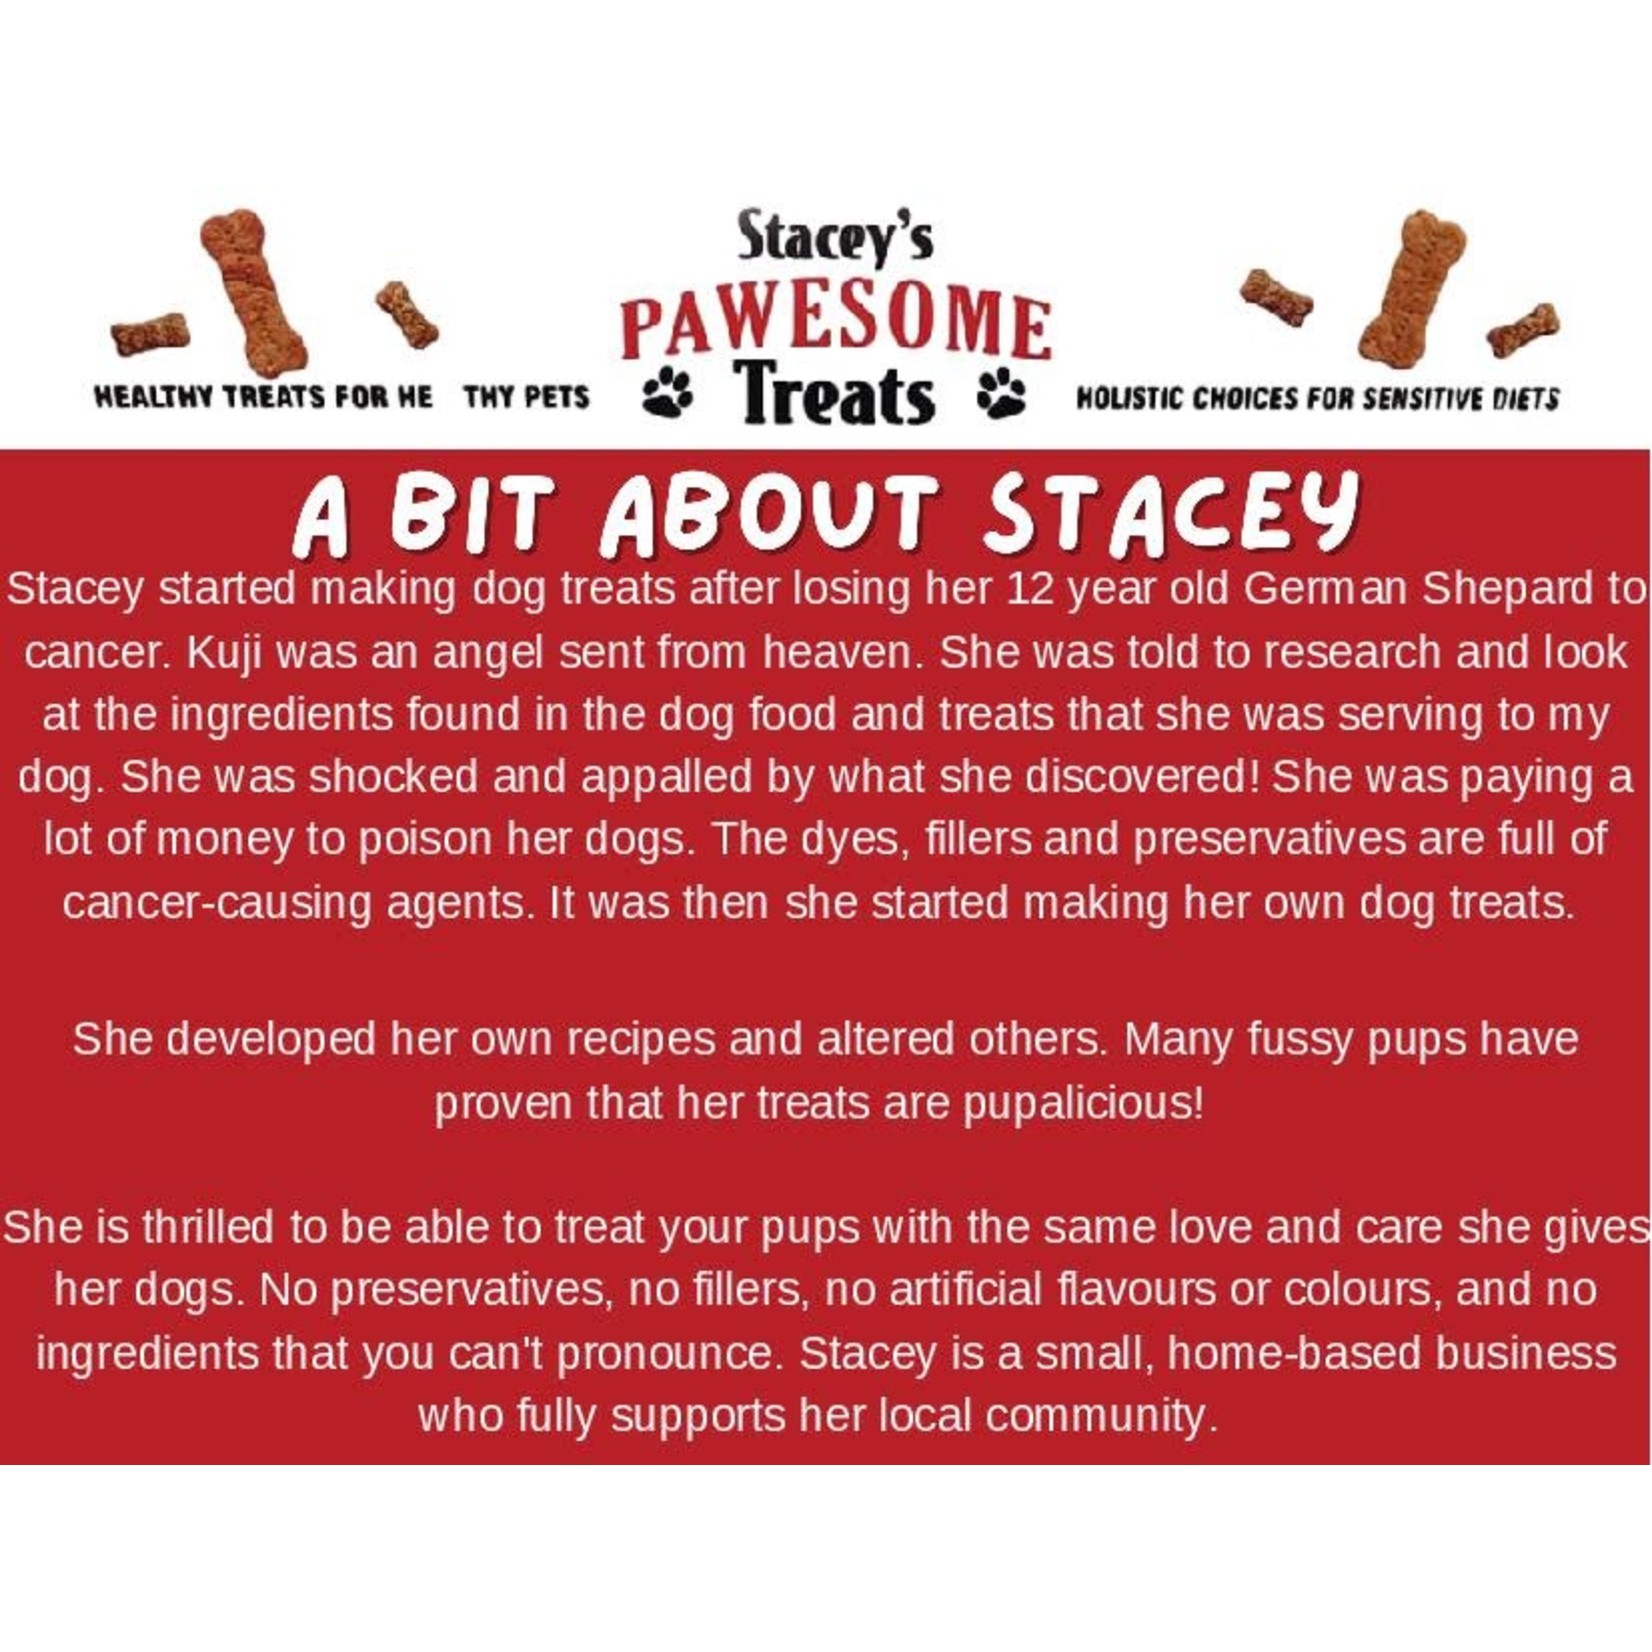 Stacey's Pawesome Treats Pizza Bites